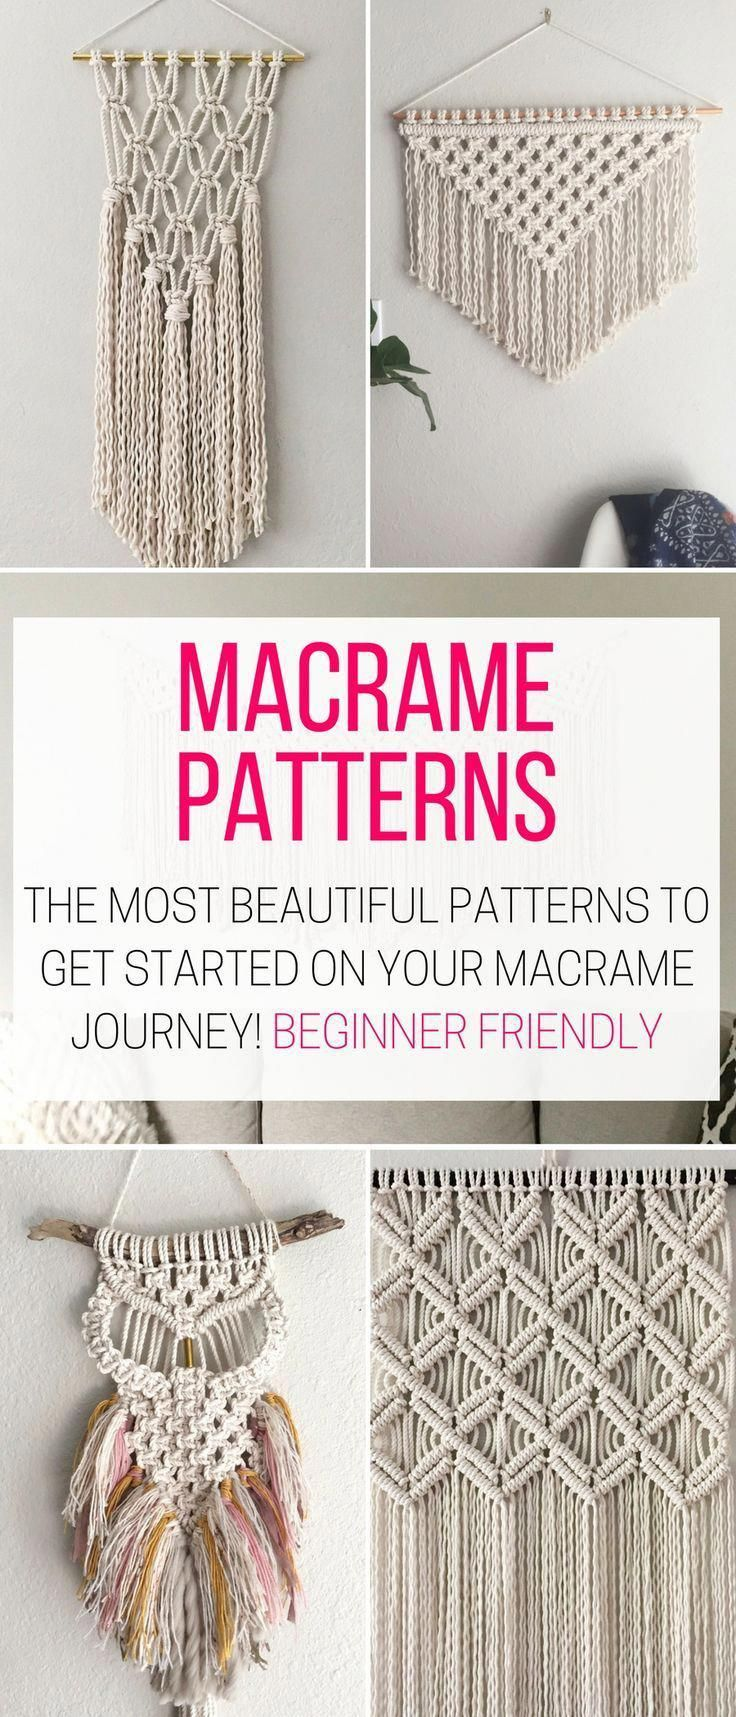 I Found These Diy Macrame Wall Hanging Patterns And I Want To Try Make One For My Bedro Macrame Wall Hanging Patterns Macrame Patterns Macrame Wall Hanging Diy